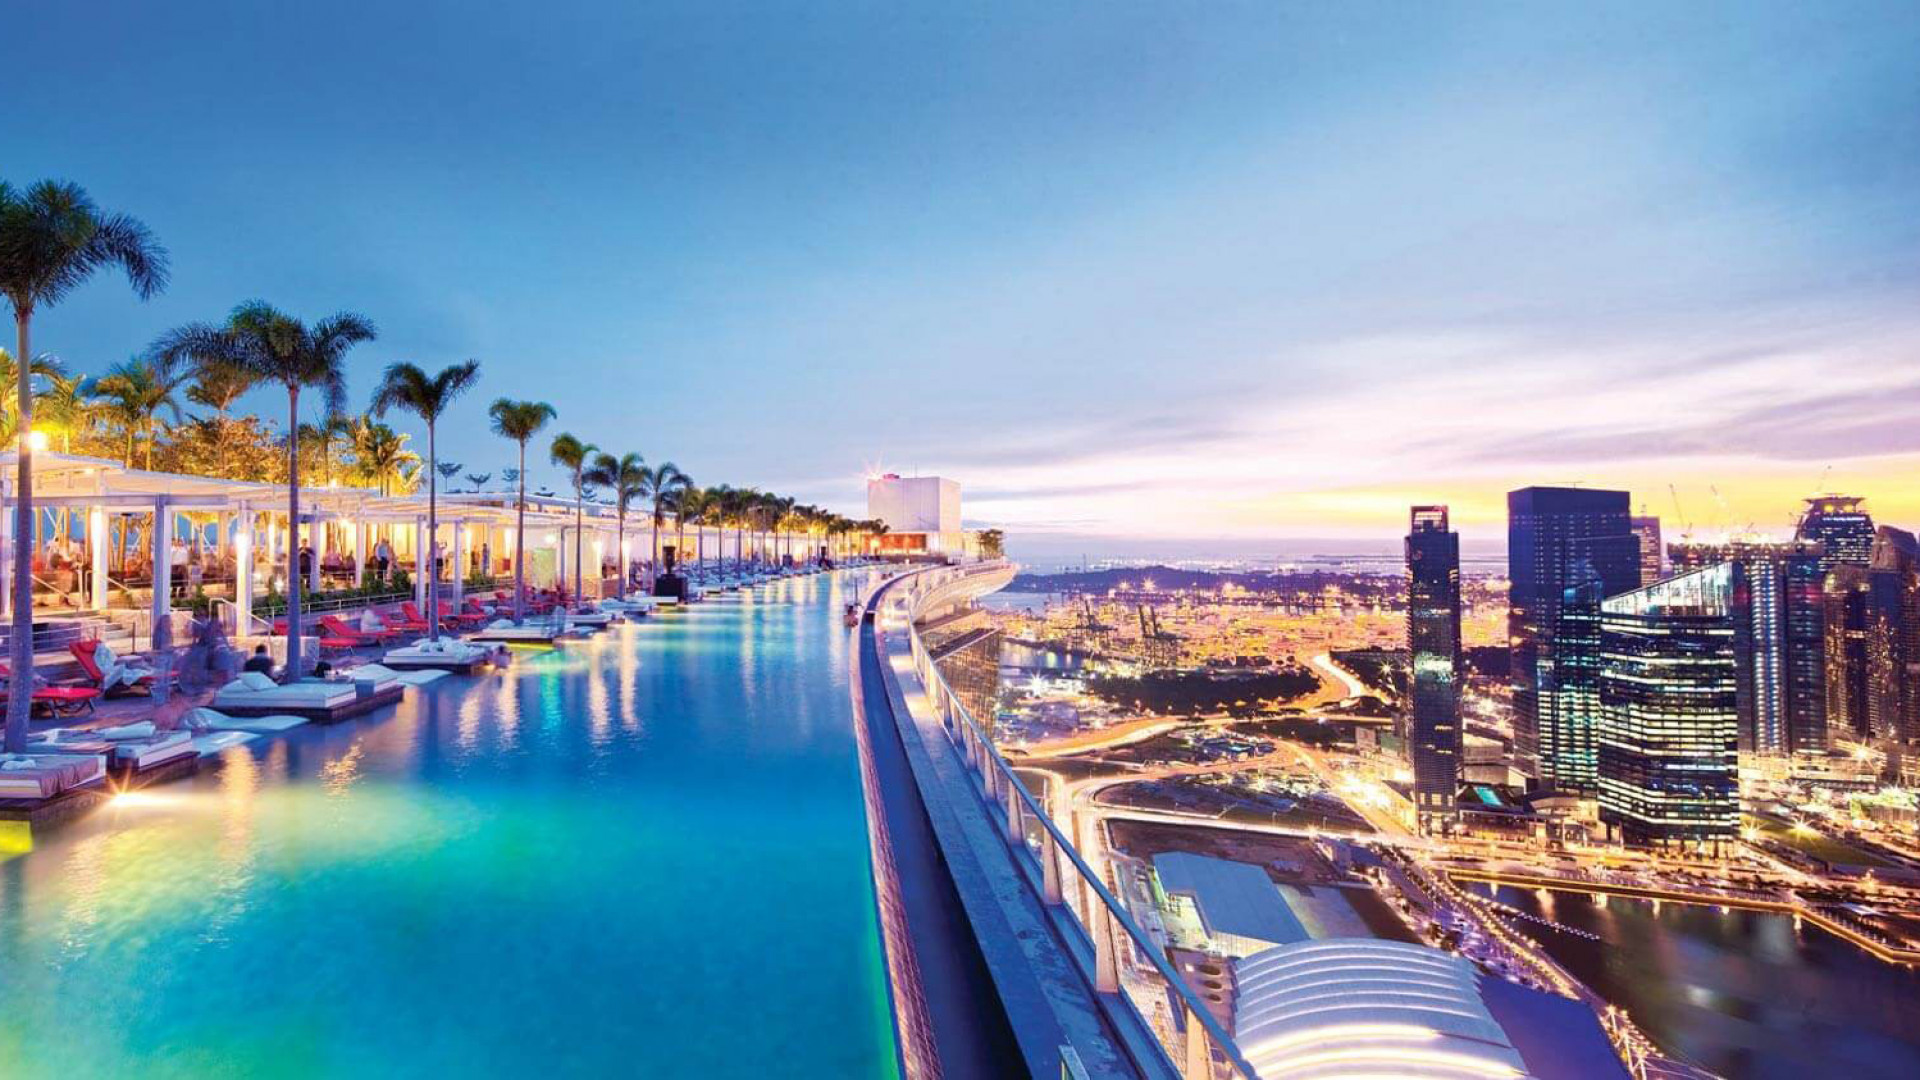 World's Most Awesome Swimming Pools: Marina Bay Sands Hotel Singapore